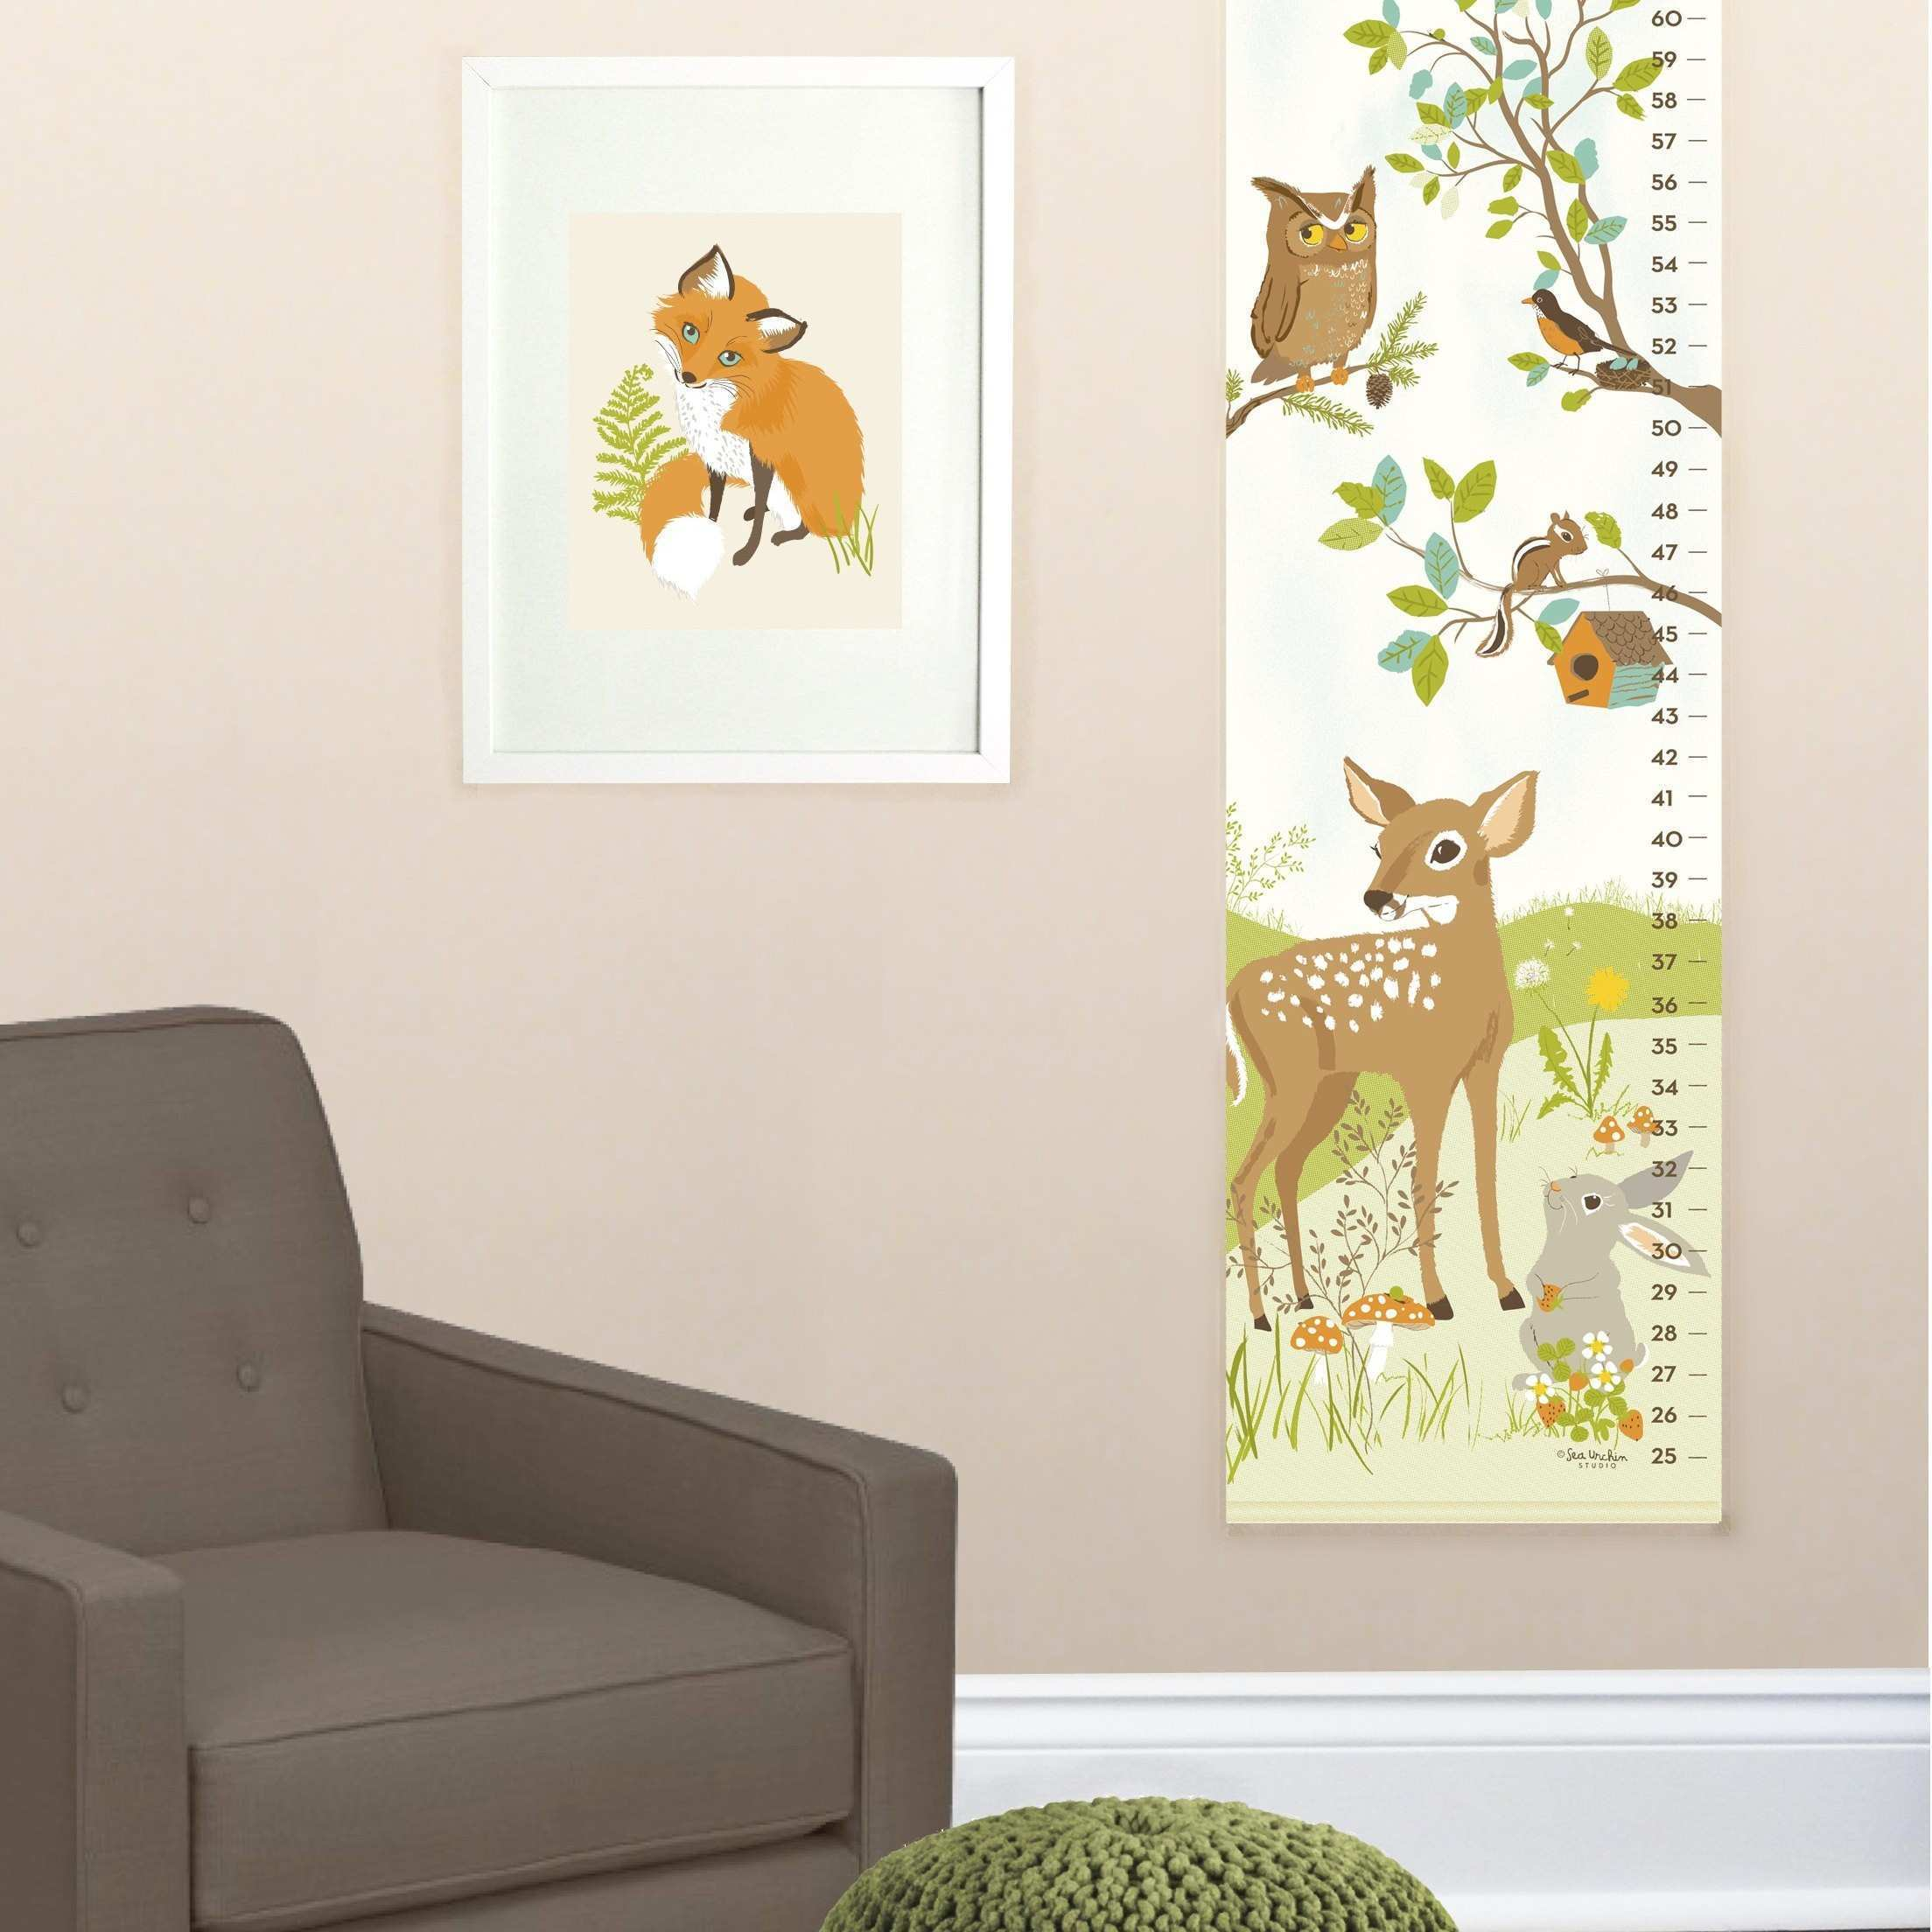 Best Palm Tree Decal for Wall